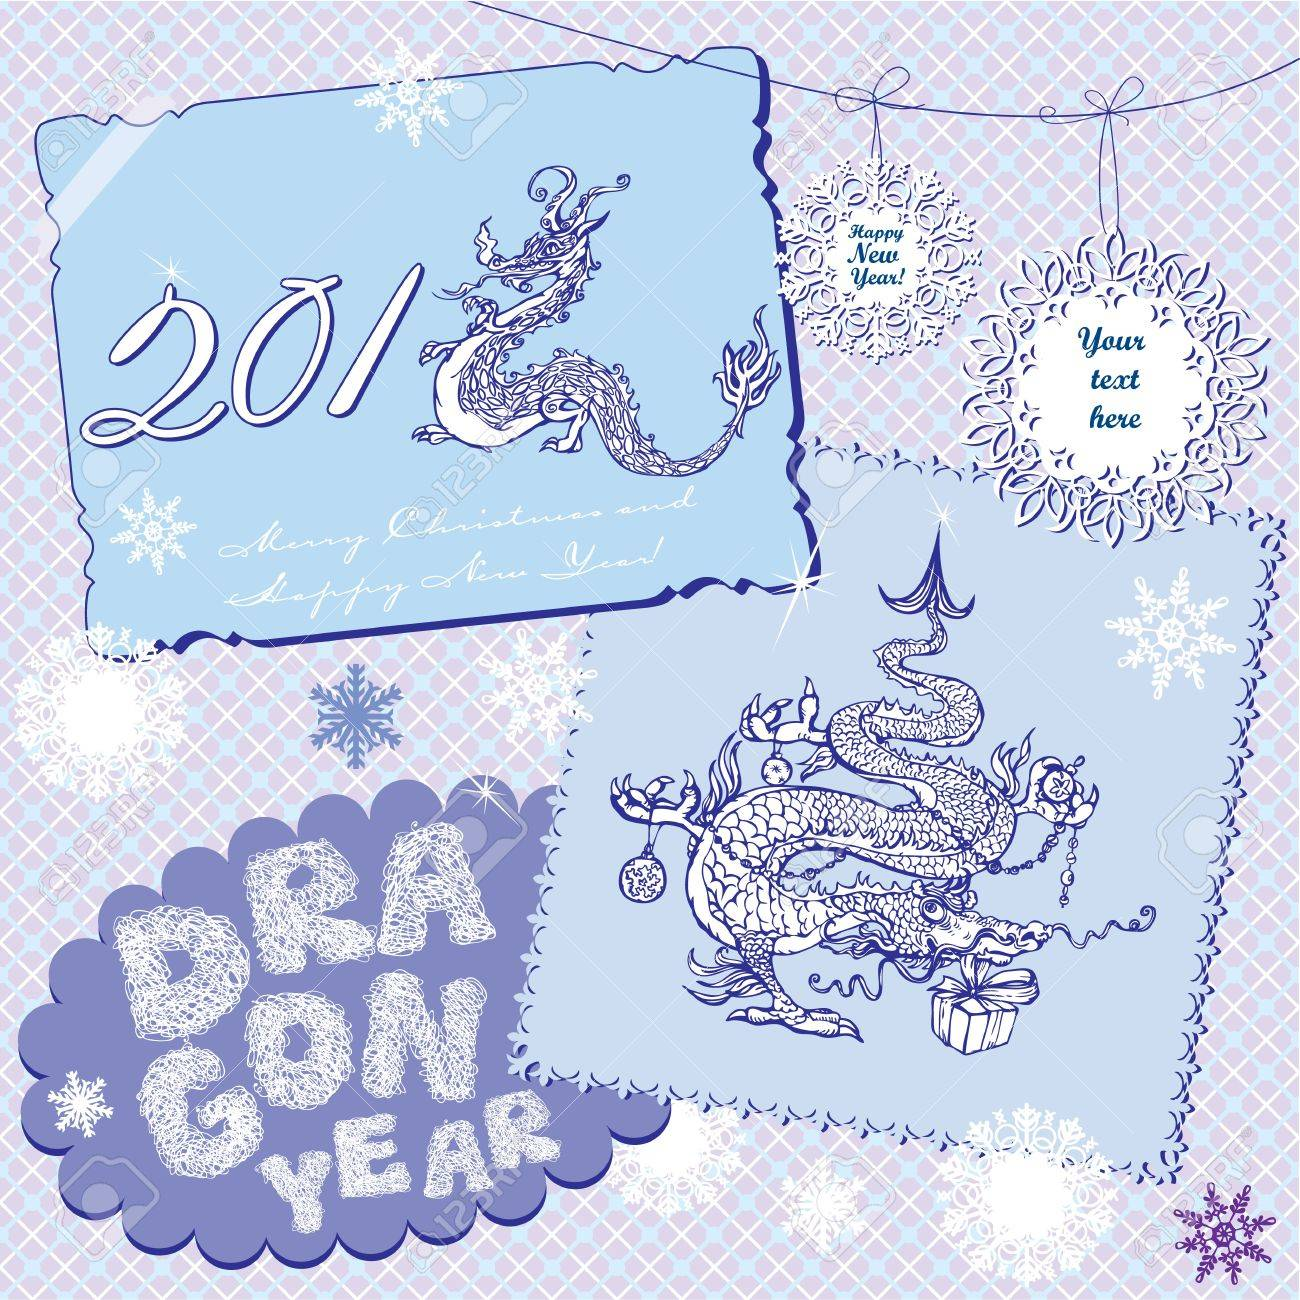 New Year Postcards in retro style with symbol 2012 dragon on light blue background. Stock Vector - 11142220